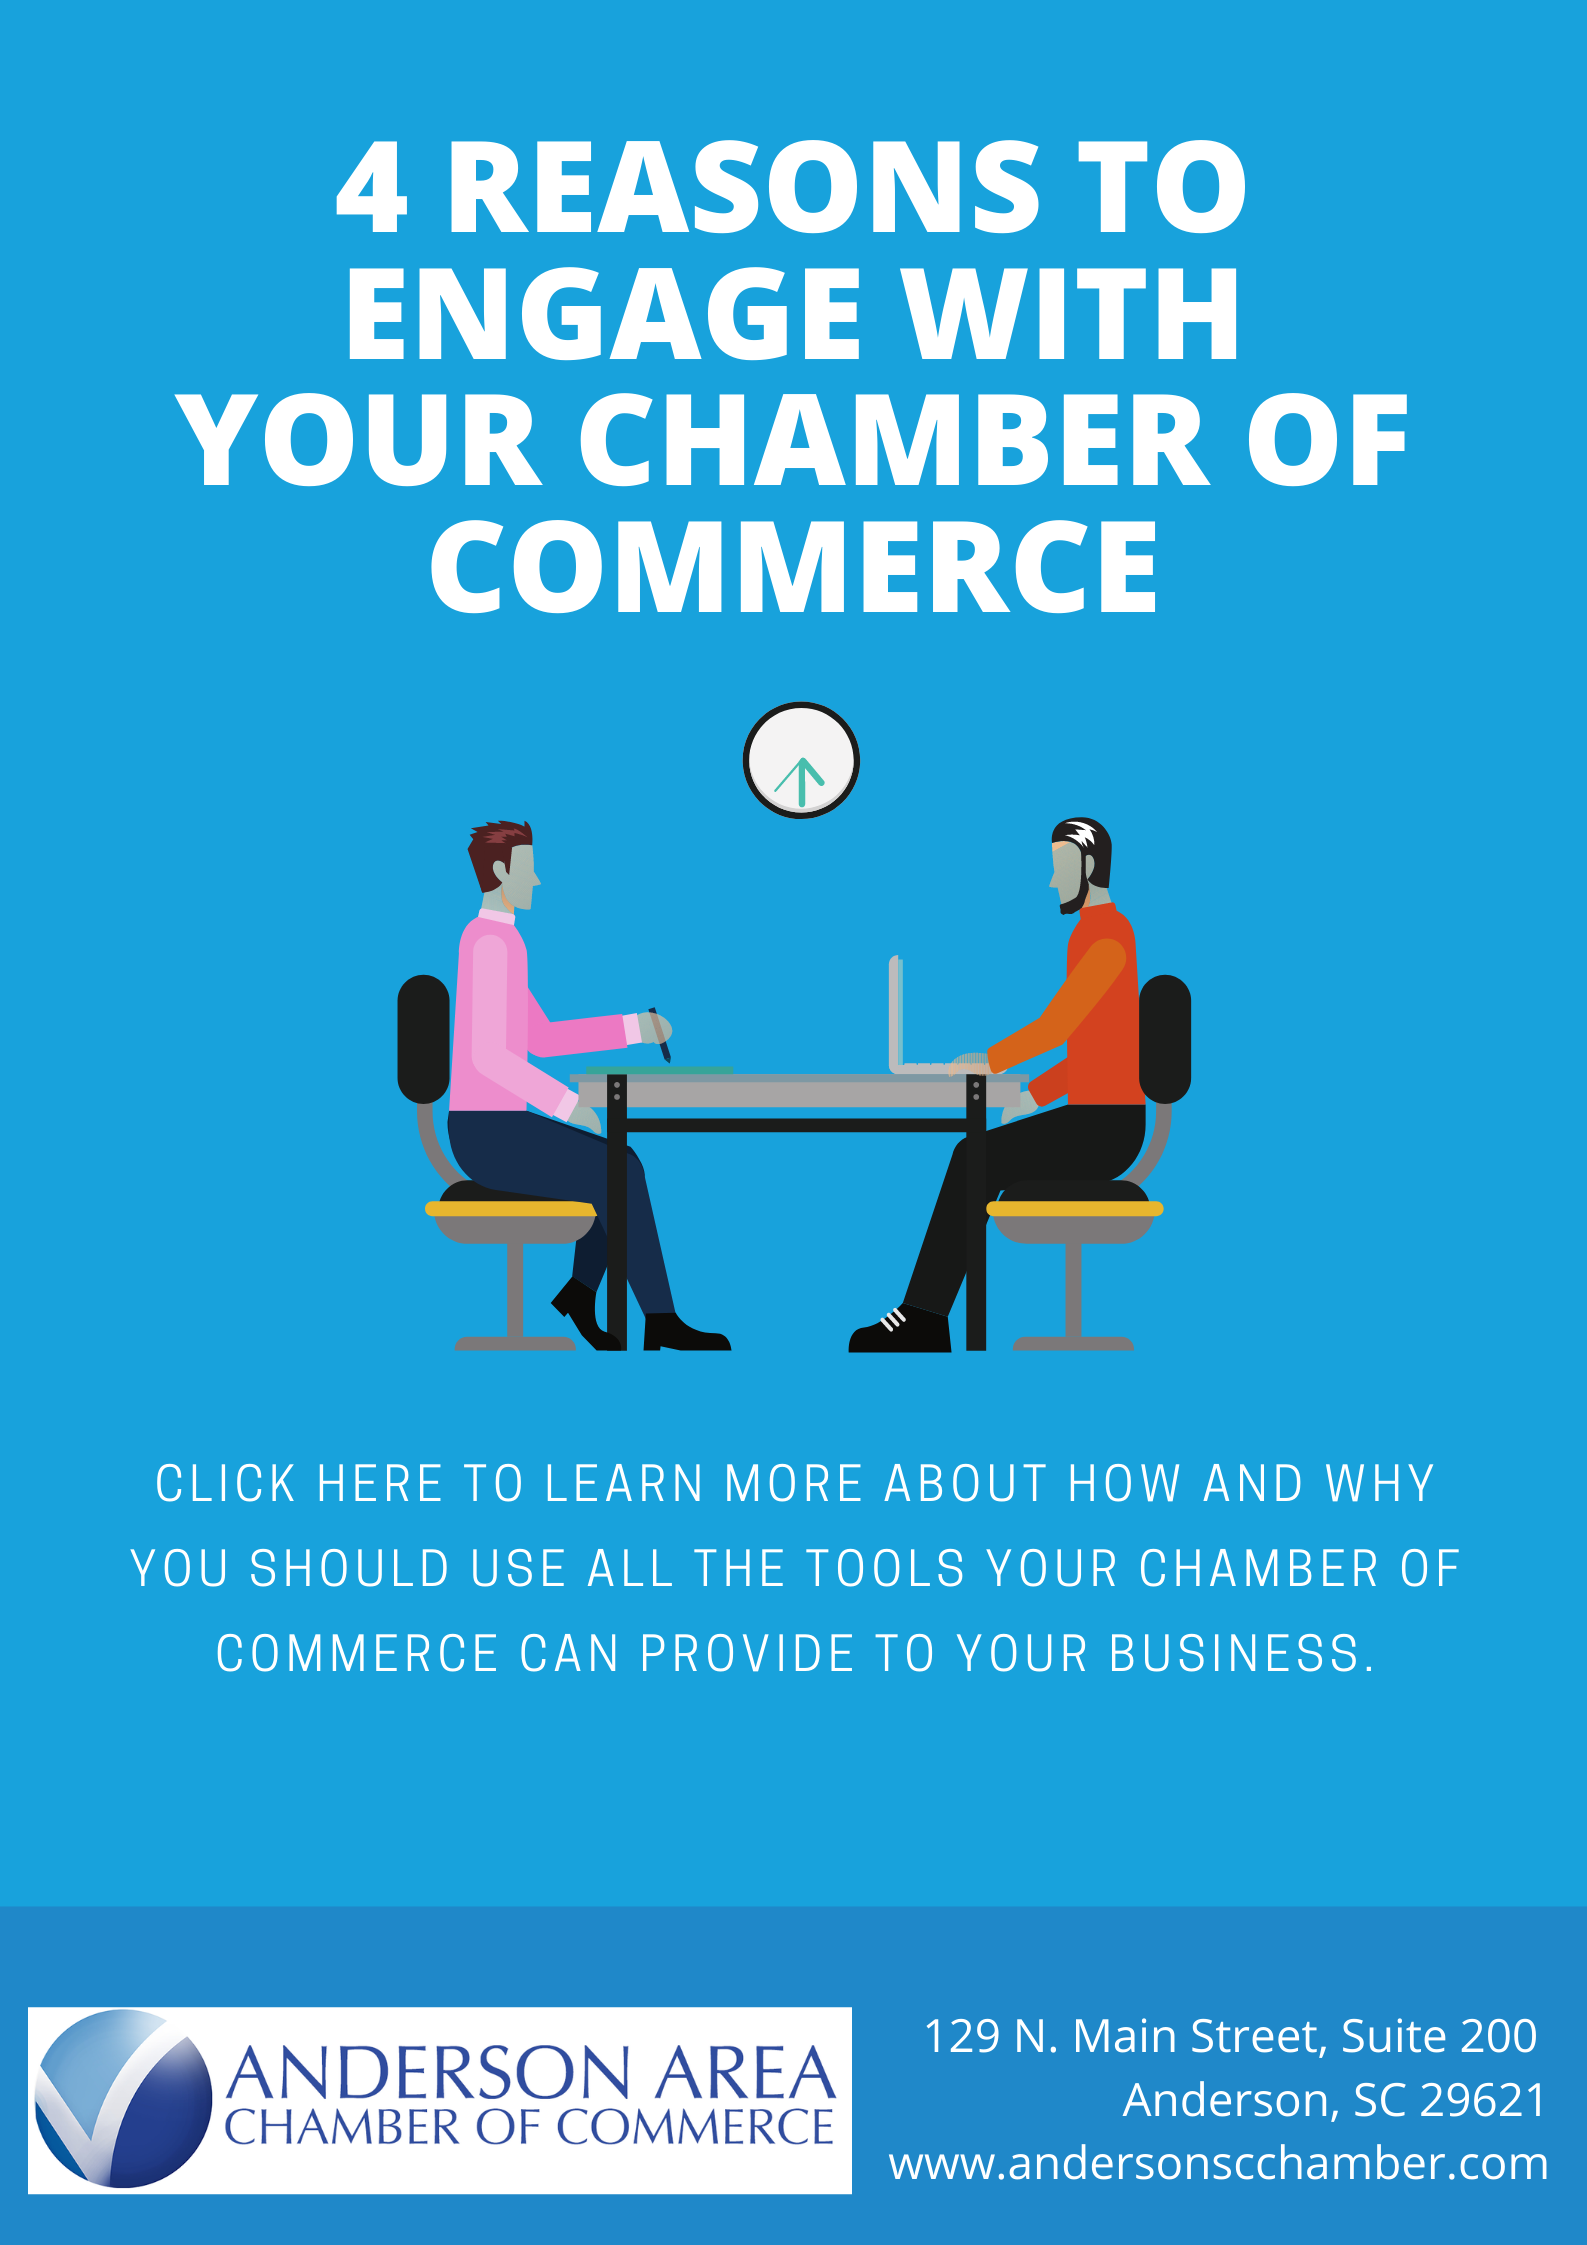 Reasons to stay engaged with your Chamber